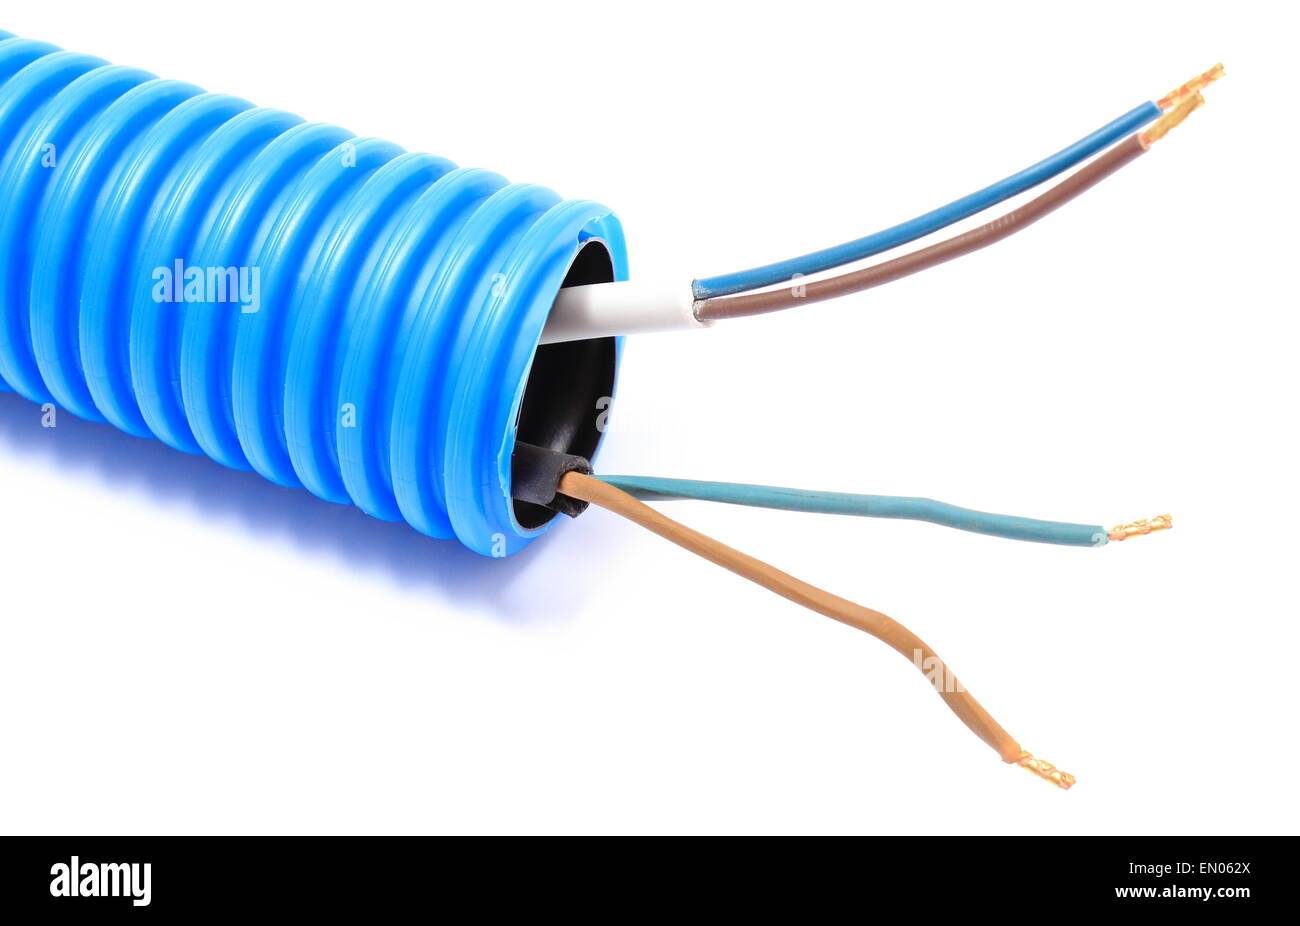 Corrugated plastic pipe and electrical cable, component for use in ...